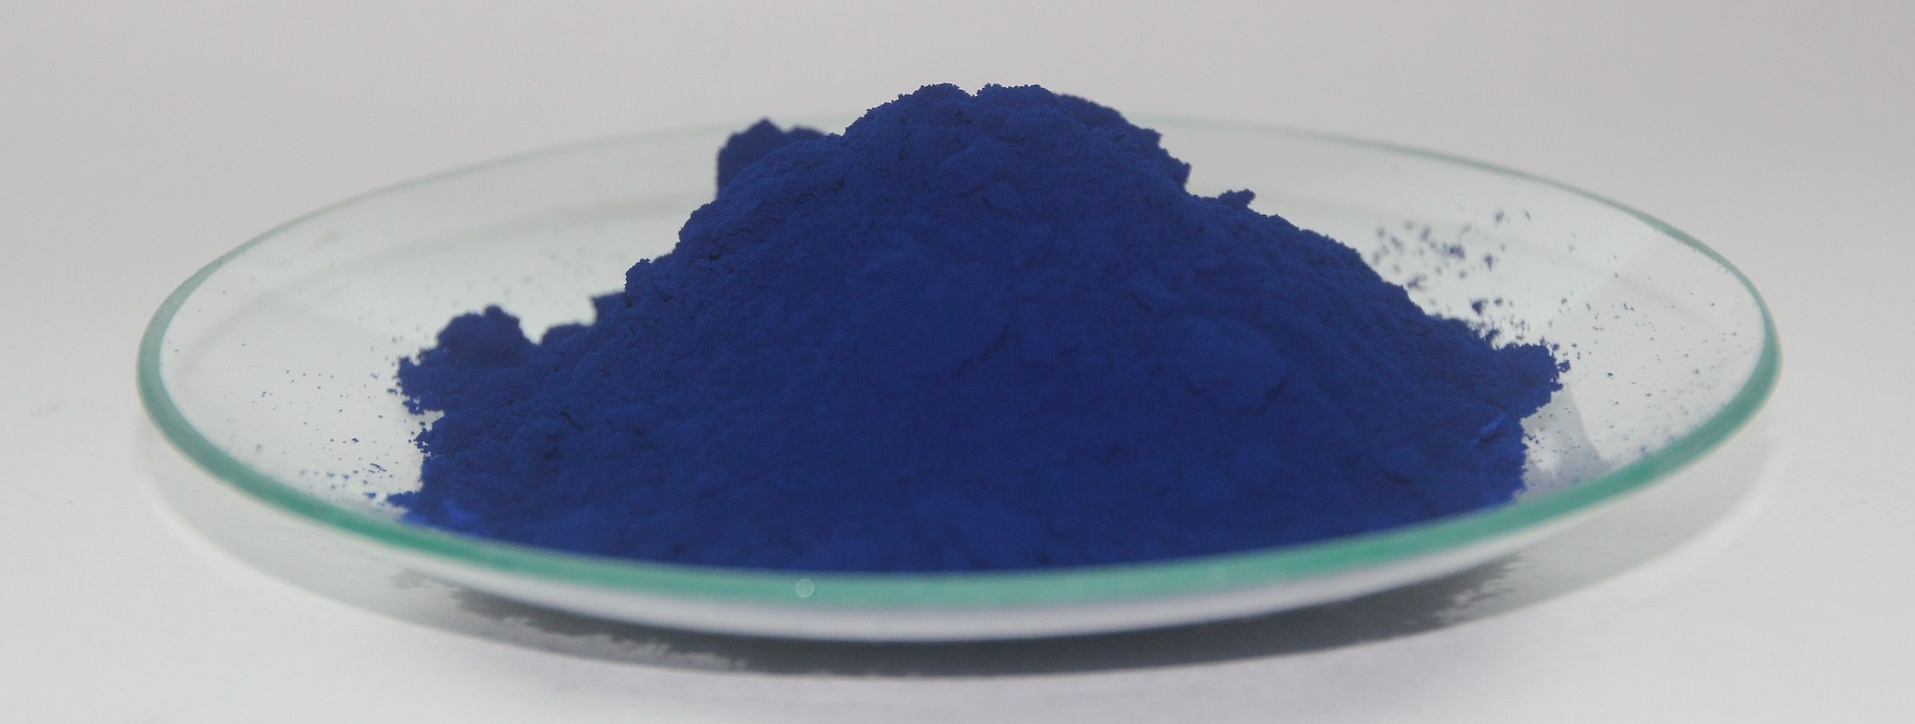 Petroleum Product of the Week: Artificial Food Dye ...